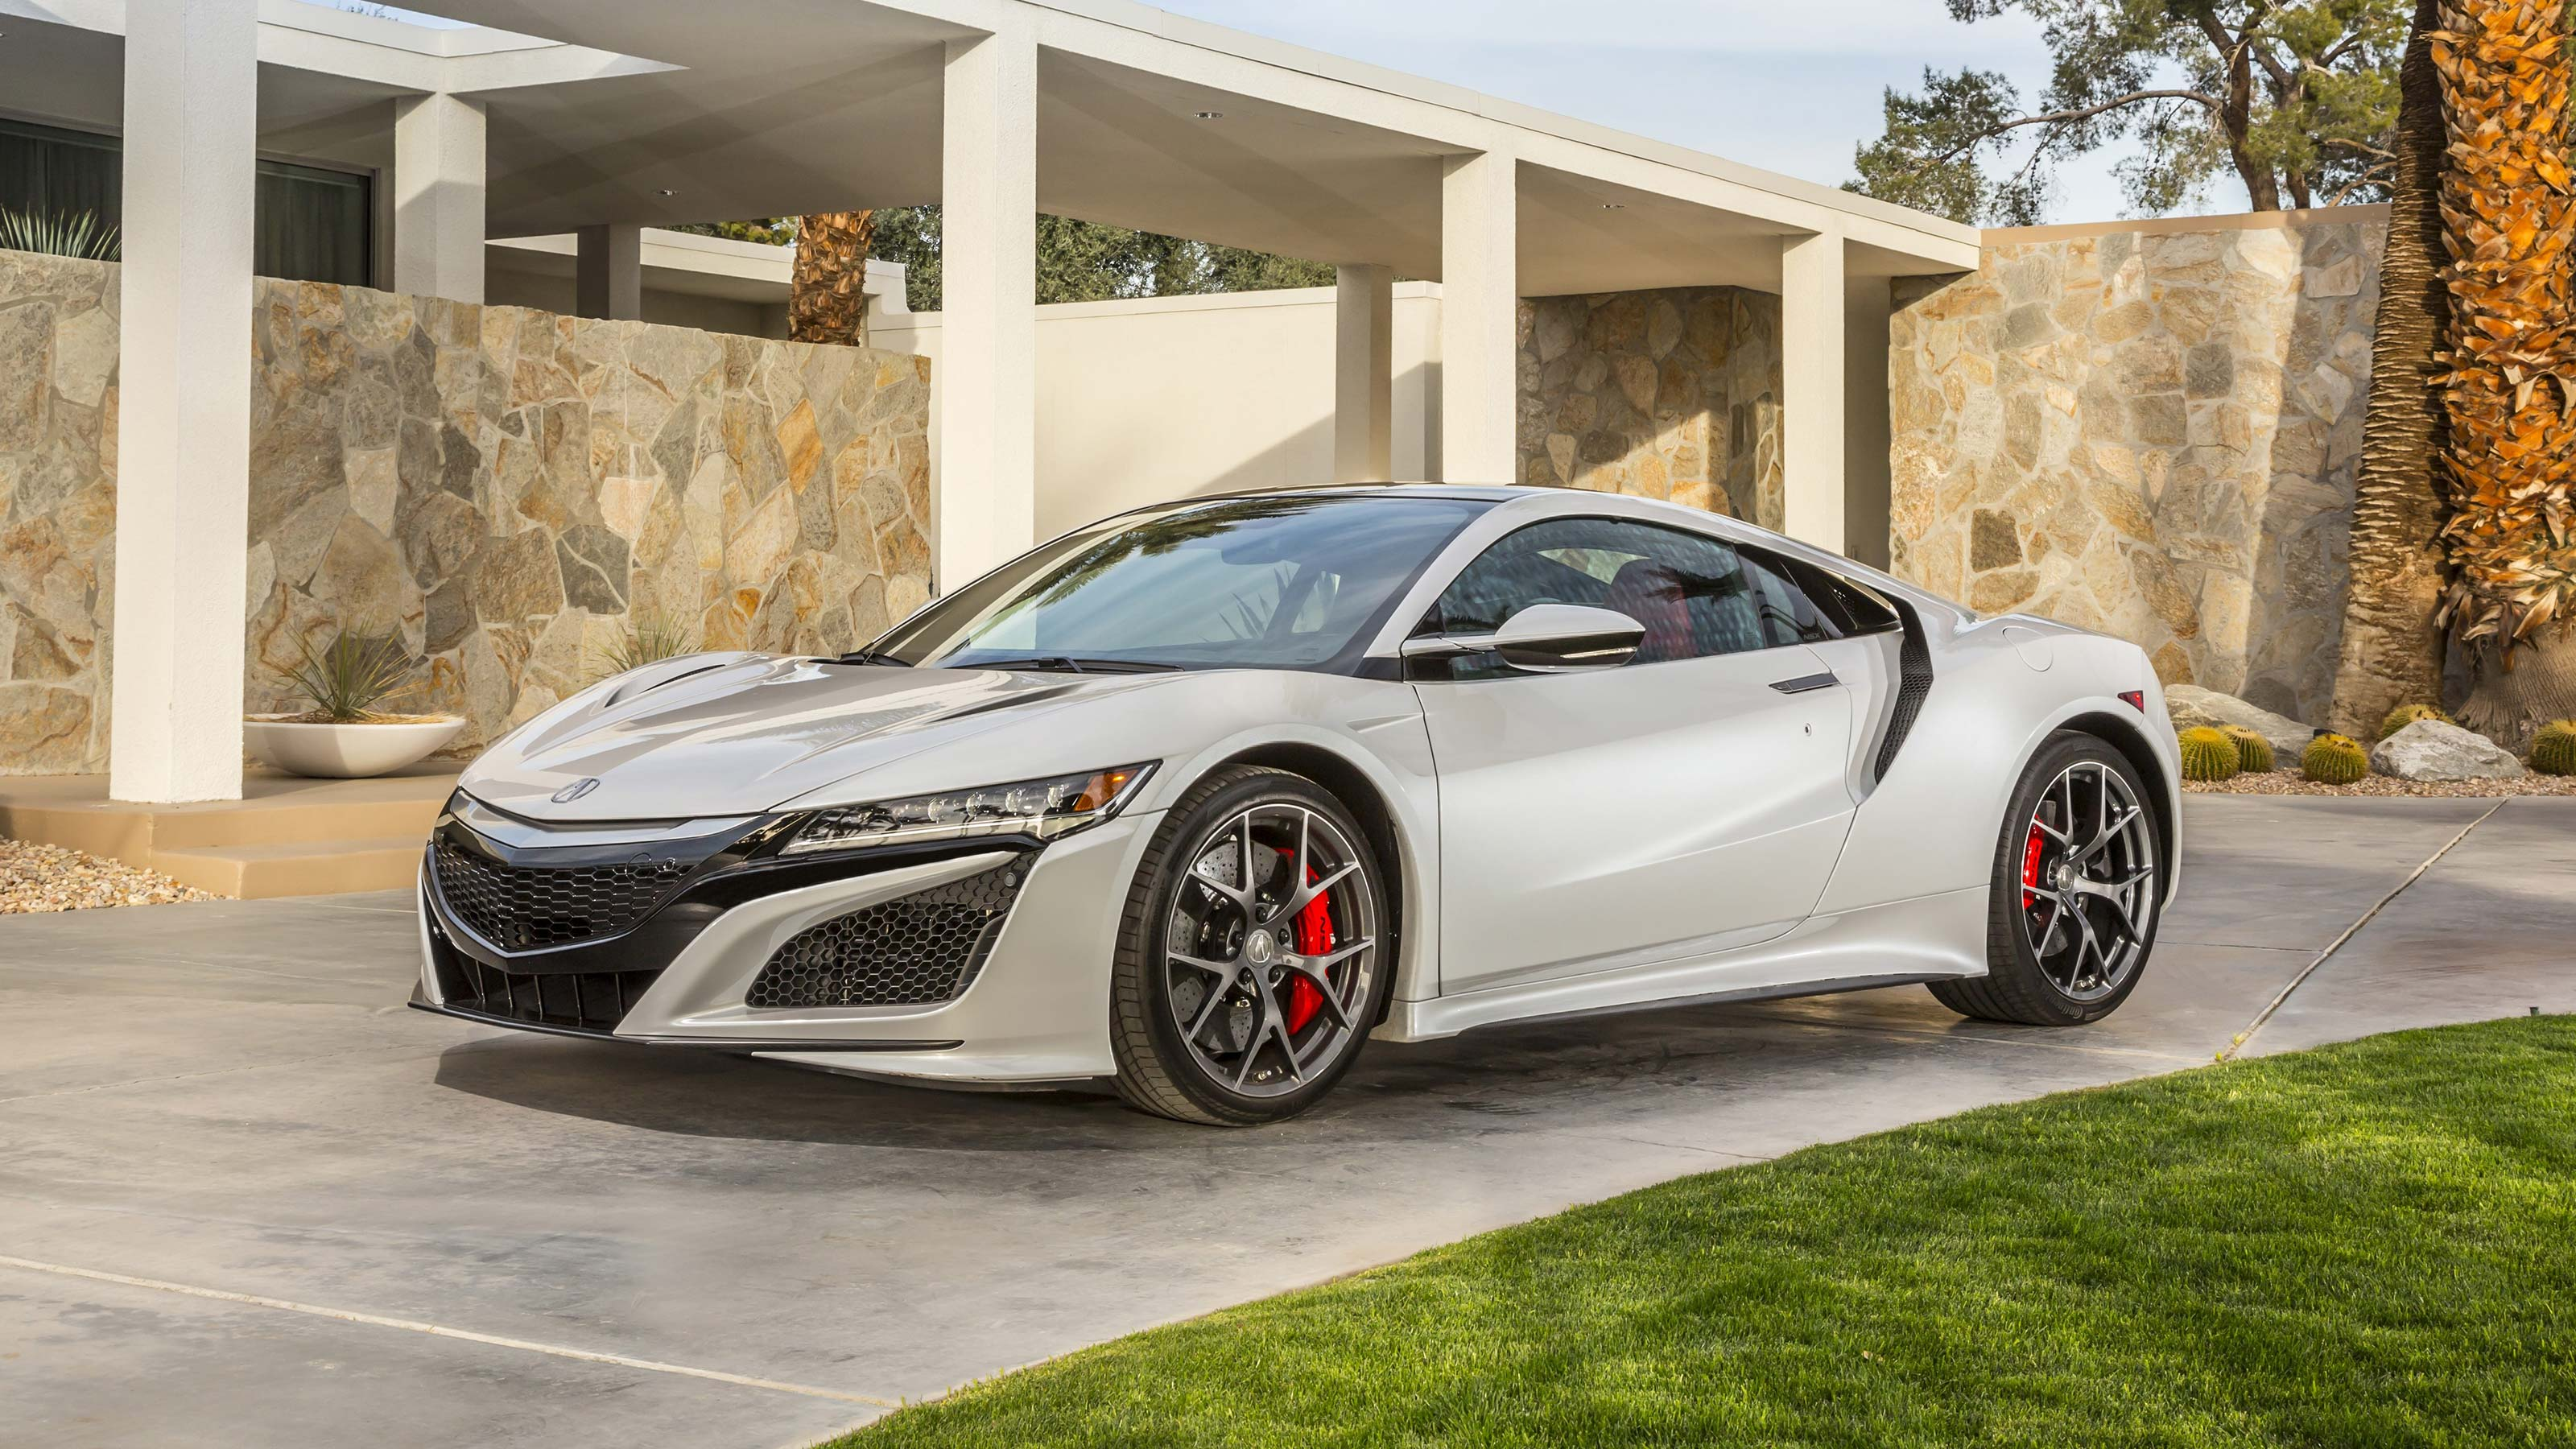 2018 acura nsx drivers side view in motion in a torpical residential